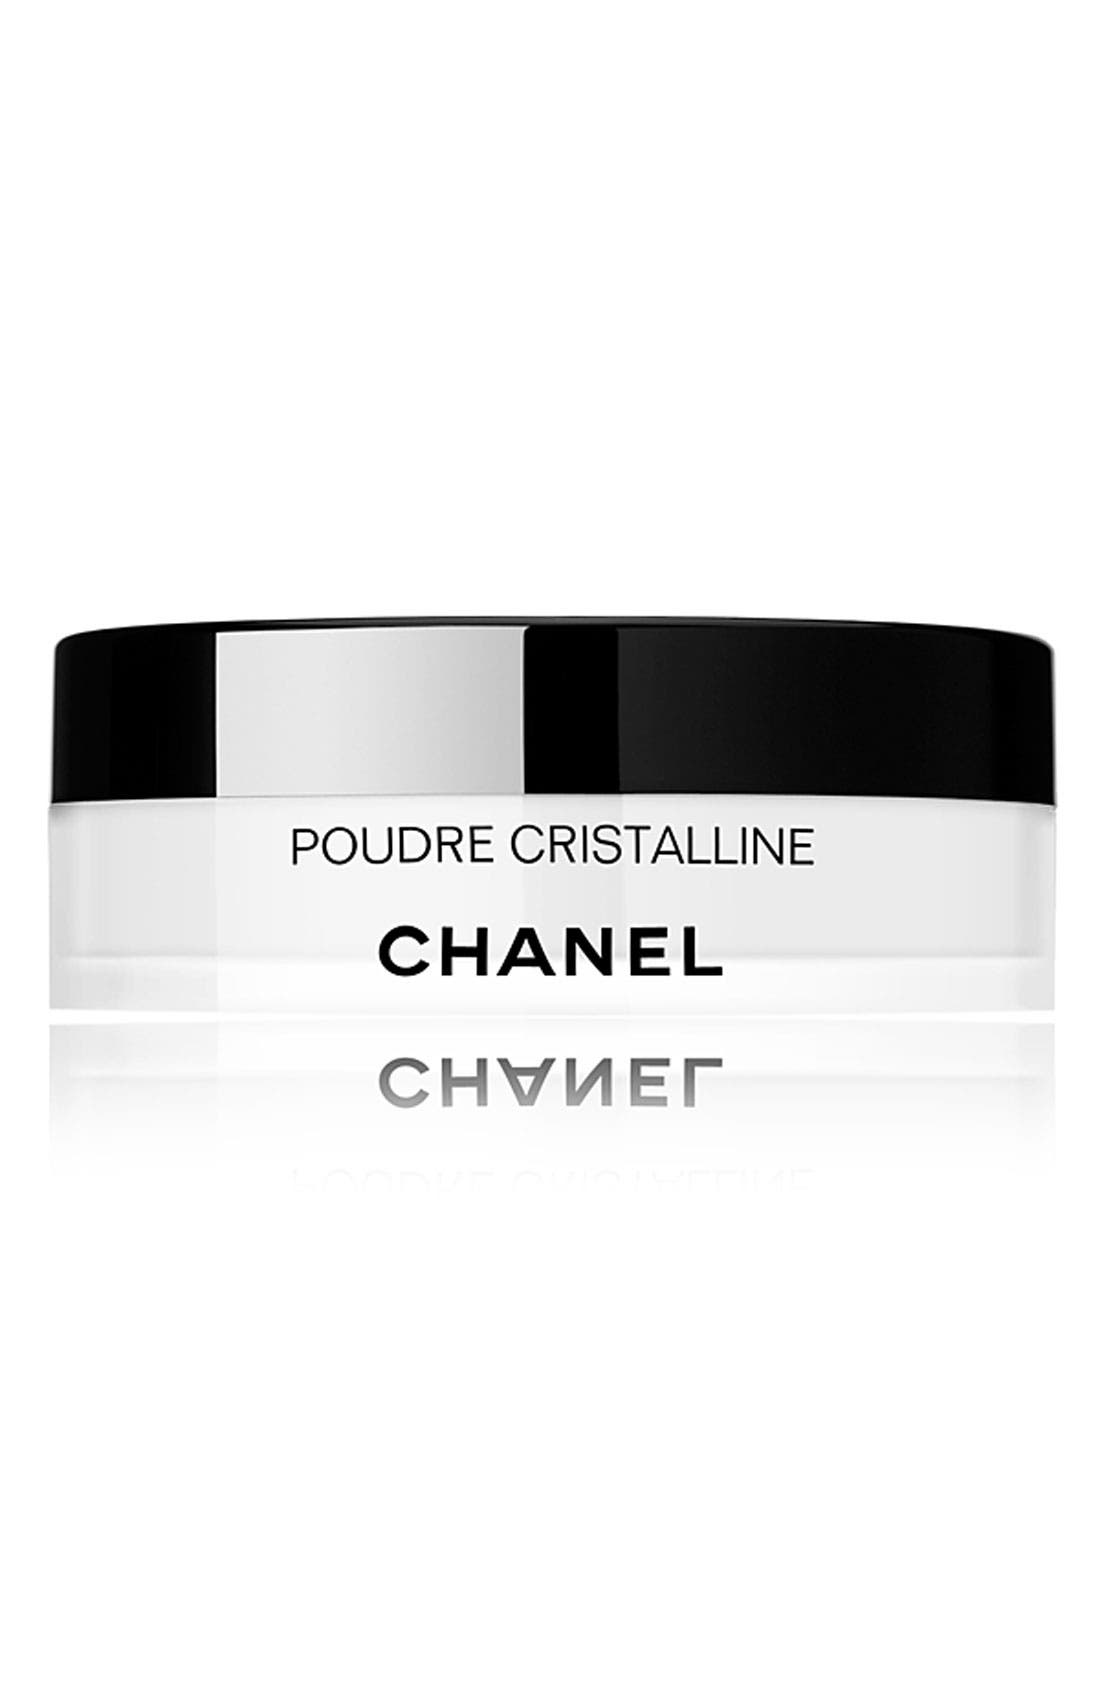 POUDRE CRISTALLINE Ultra-Fine Translucent Powder with Deluxe Puff,                             Main thumbnail 1, color,                             000